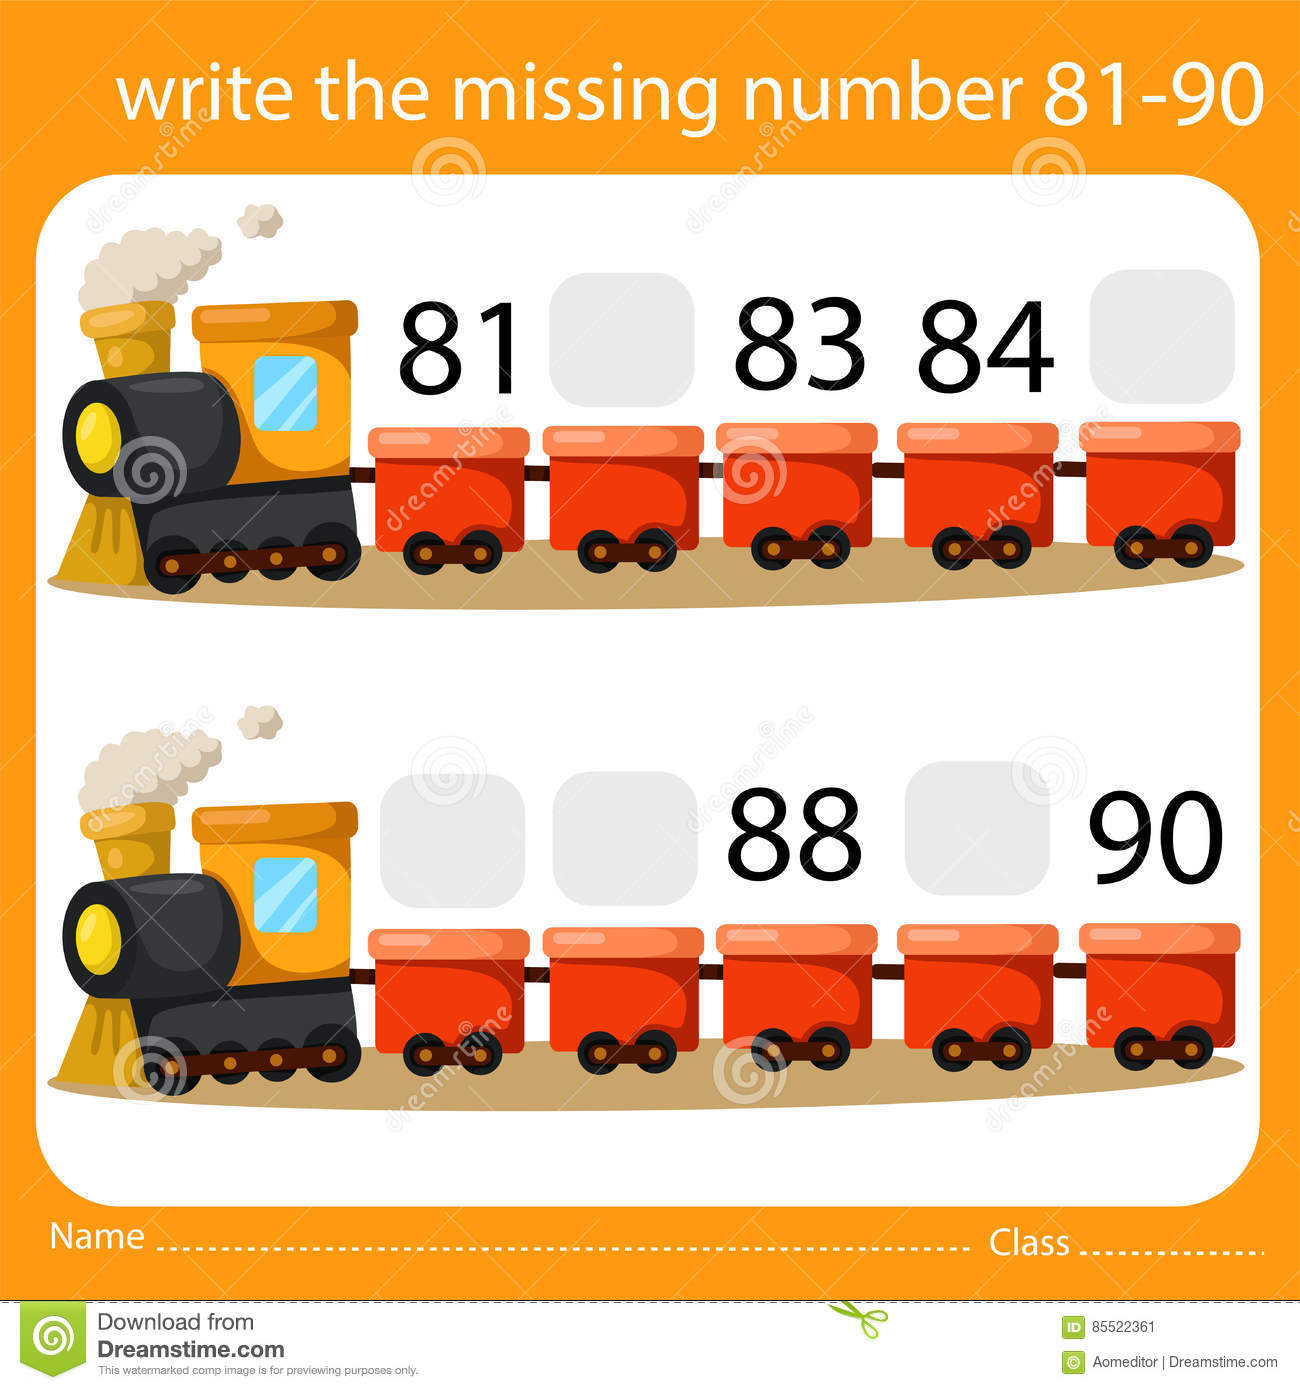 Illustrator Of Write The Missing Number 81 90 Stock Vector